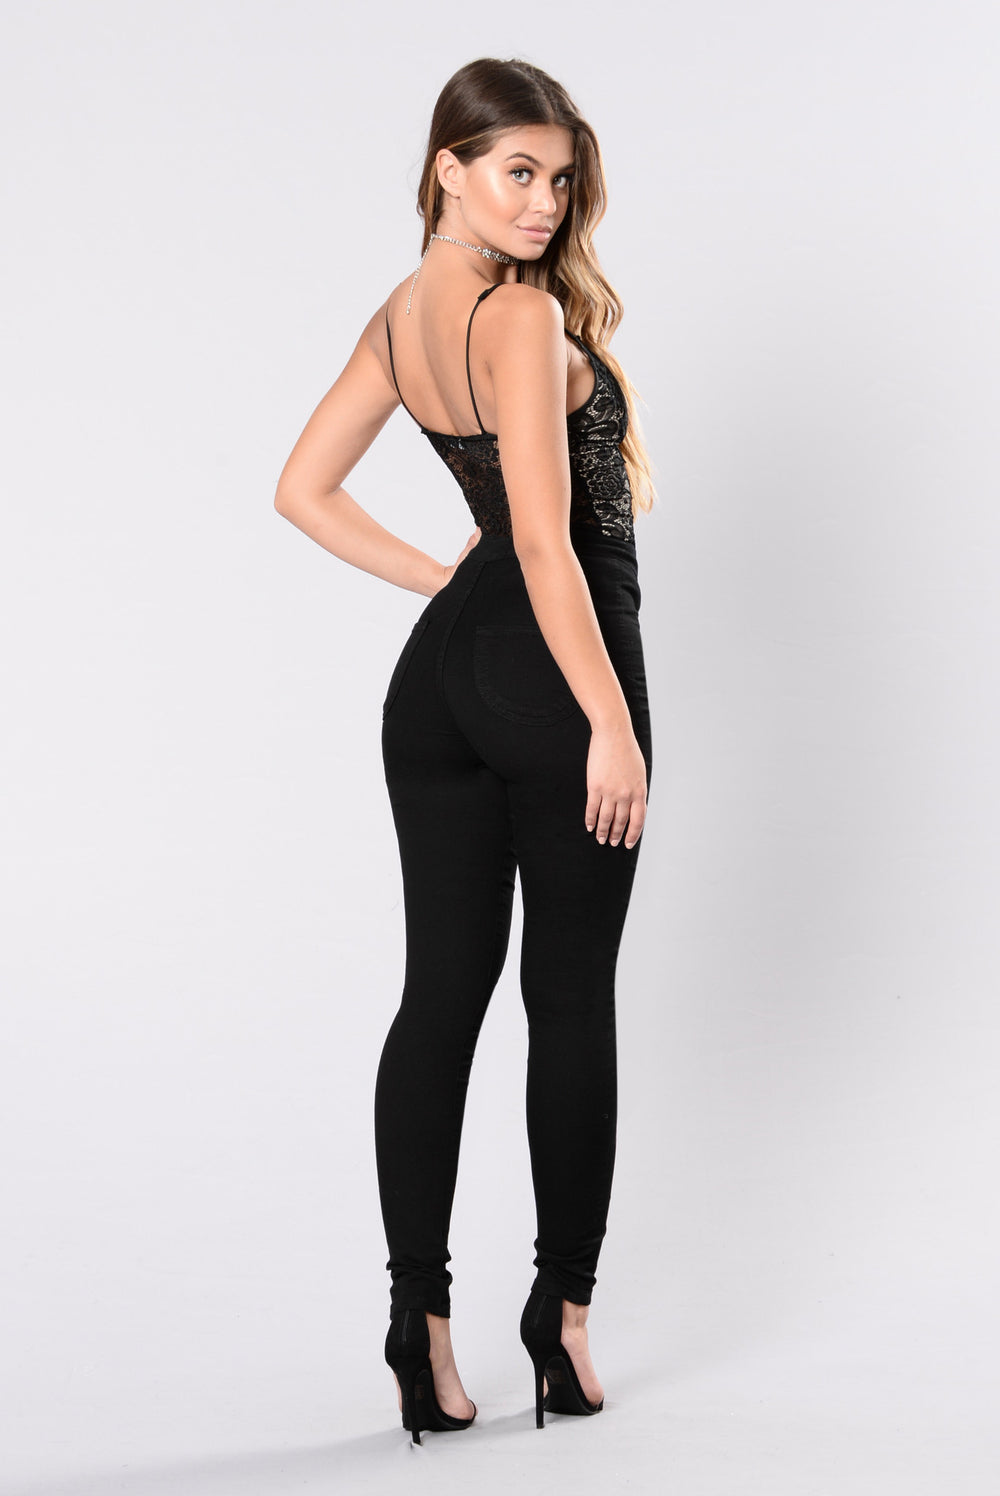 Turn Up On Me Bodysuit - Black